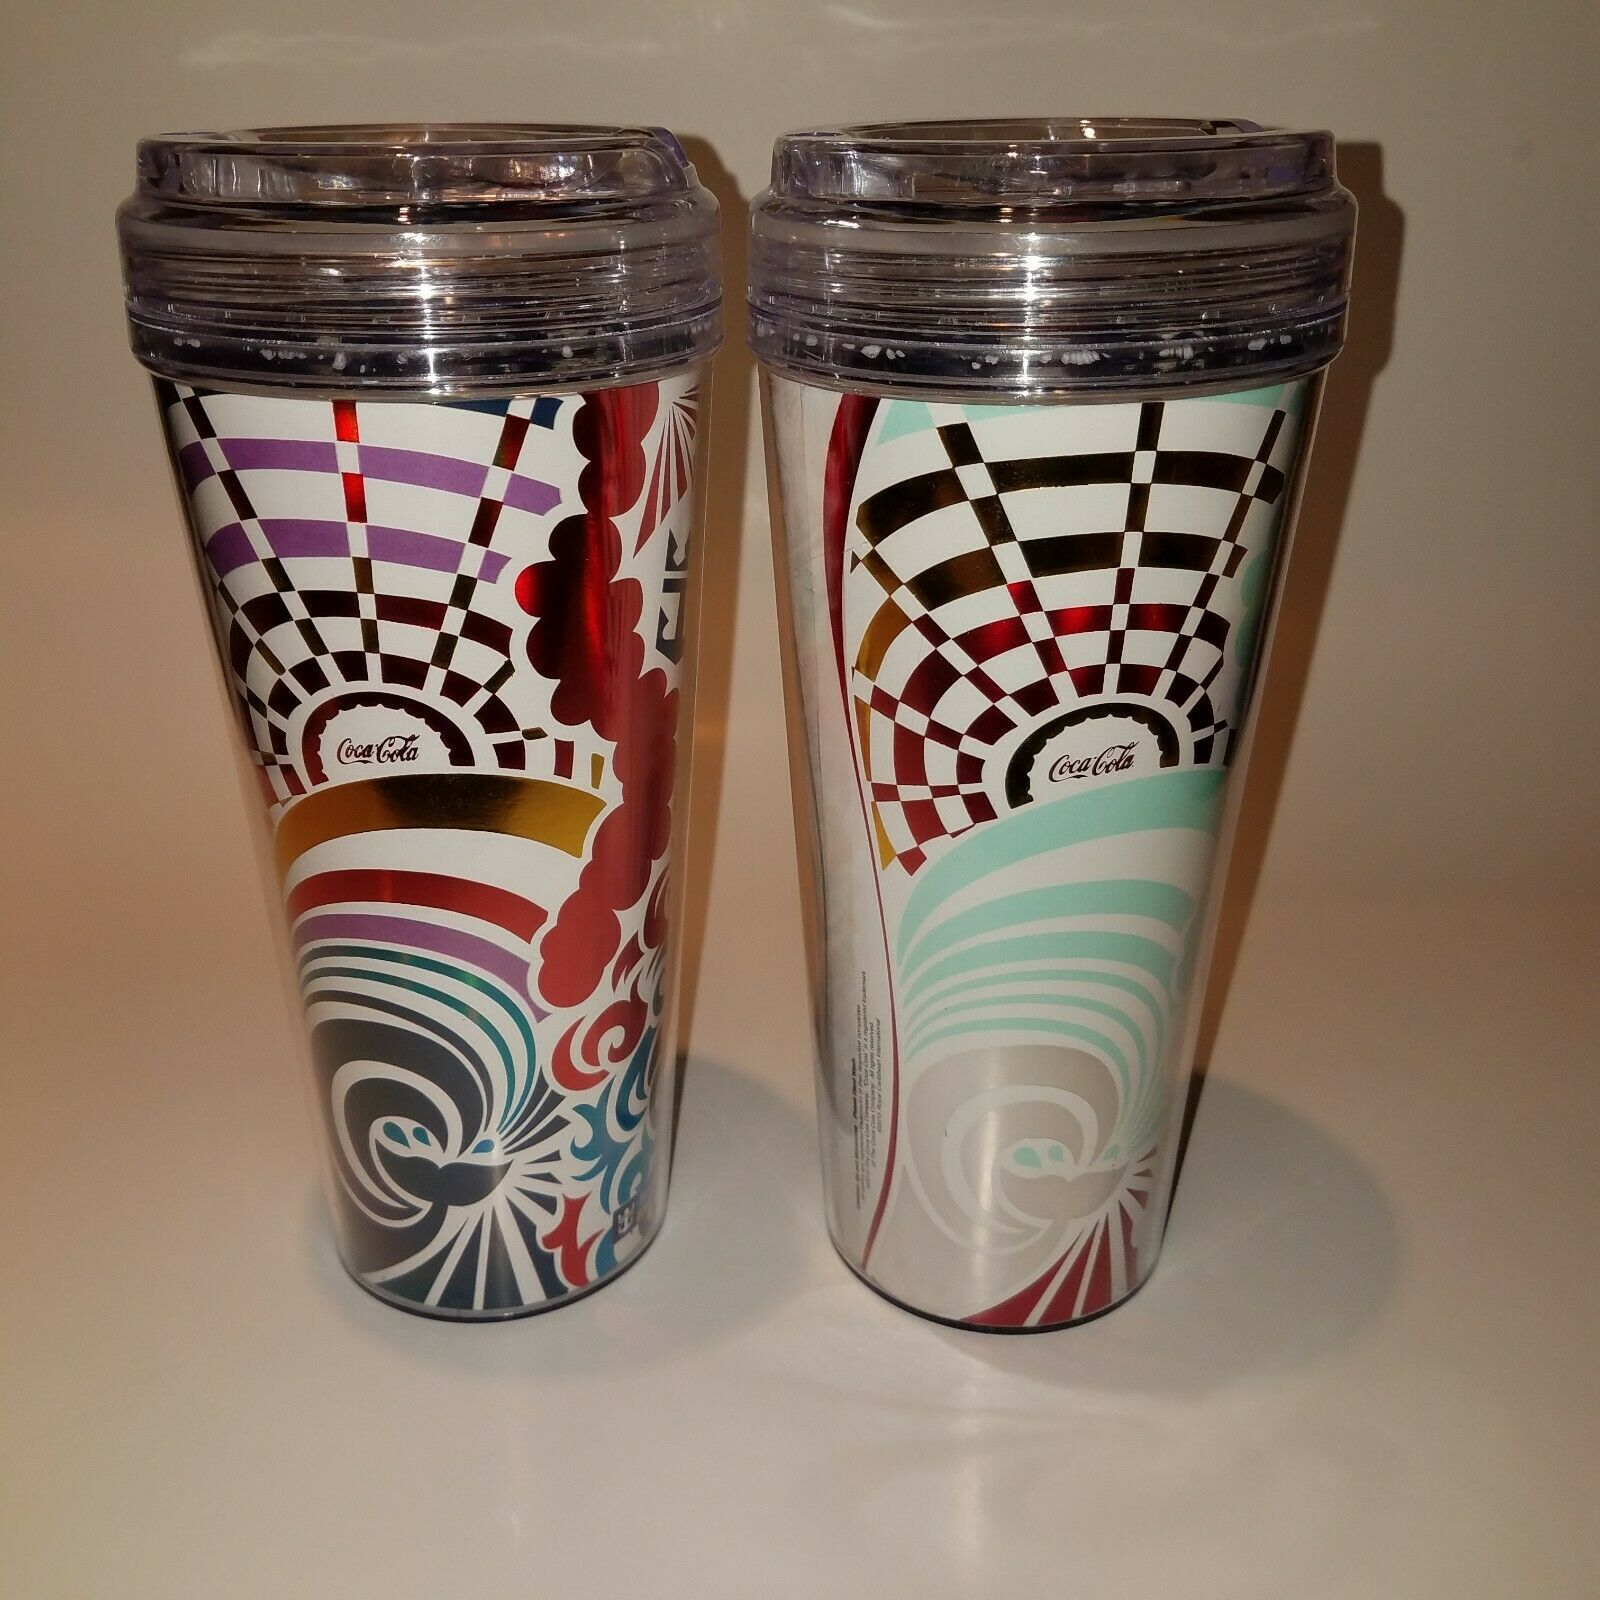 Primary image for Two Royal Caribbean Cruise Drink Package Cups Tumblers Different Designs Set 2